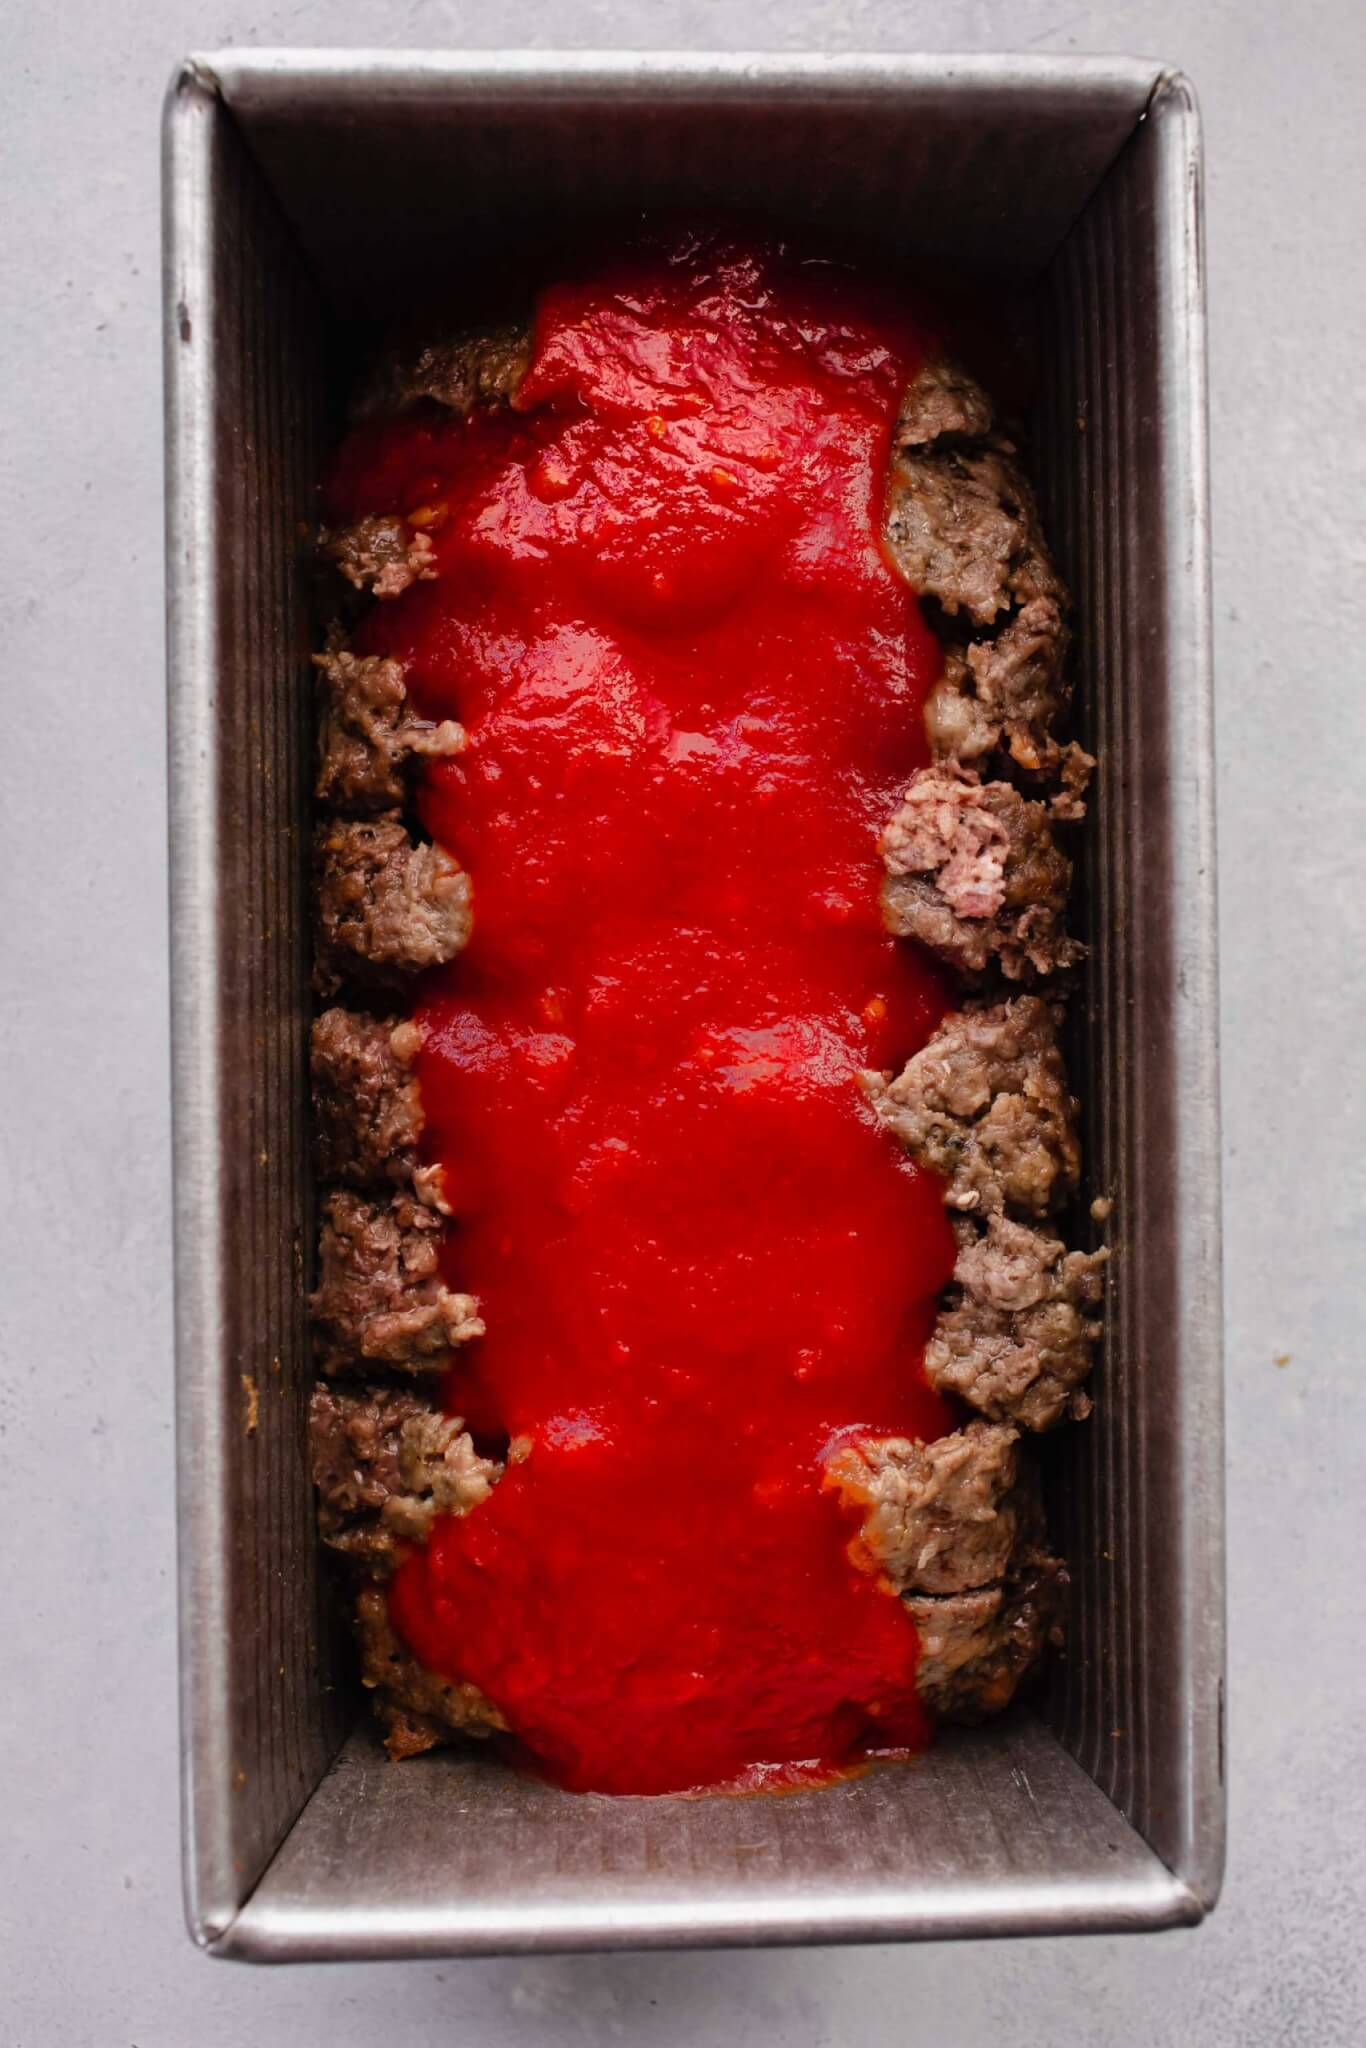 Half baked meatloaf after slicing and drizzling on tomato sauce.